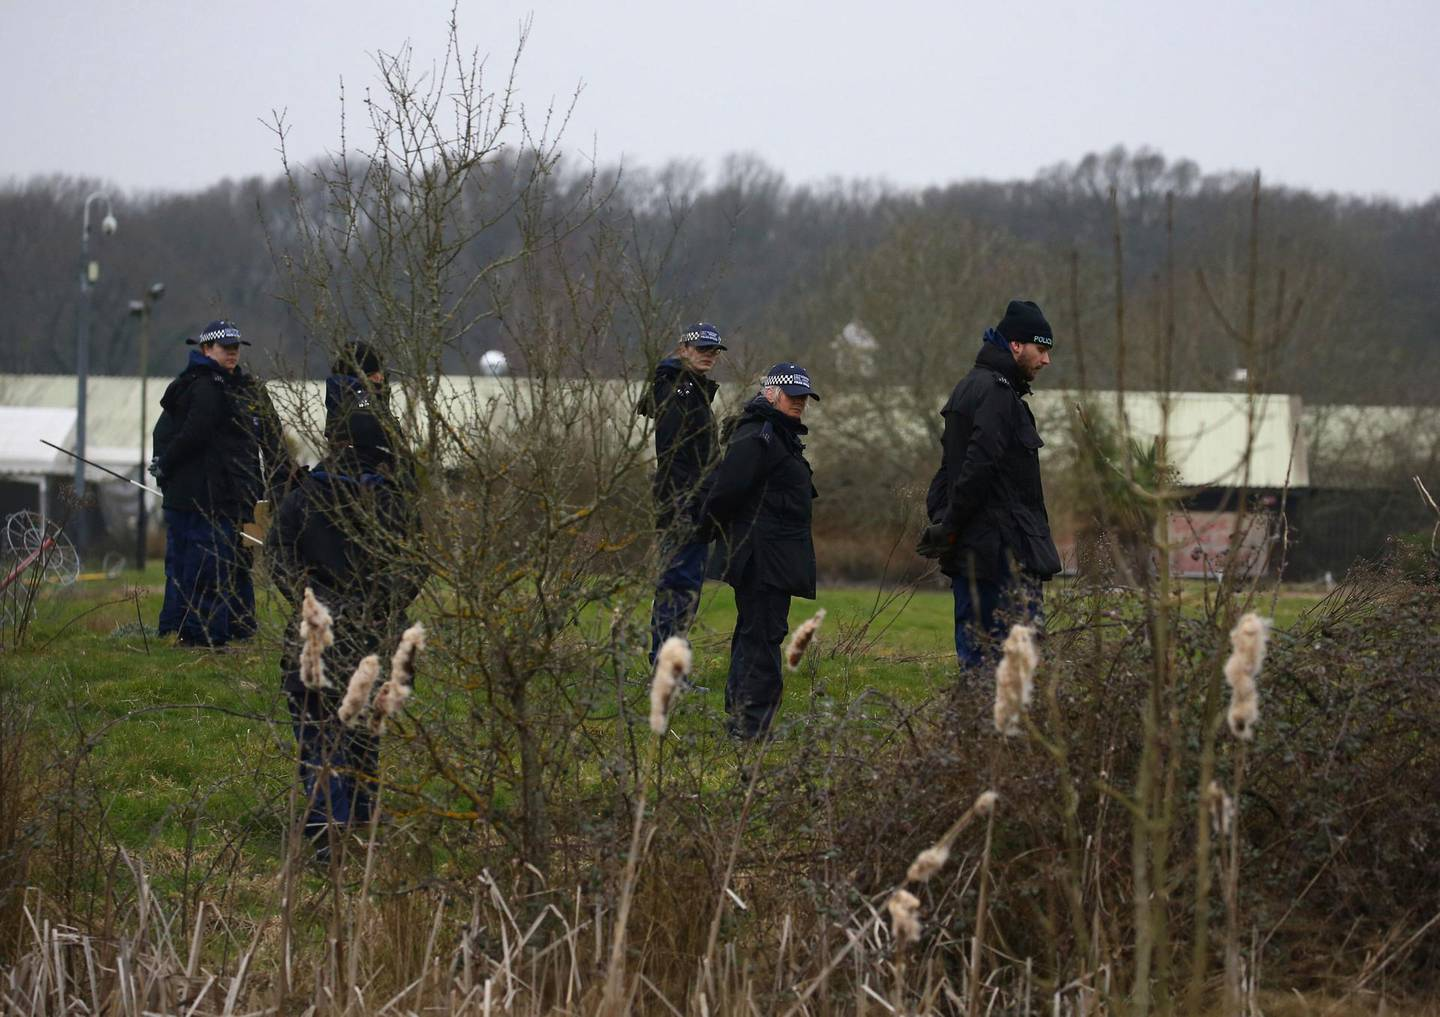 """Officers from the Metropolitan Police search land near to Great Chart Golf and Lesiure, in connection with the disappearance of Sarah Everard, in Ashford, England, Wednesday March 10, 2021. Britain's Metropolitan police says an officer has been arrested in connection with the case of a woman who went missing in London last week. The force said the fact that the man is a serving police officer is """"shocking and deeply disturbing."""" Police said the officer was arrested late Tuesday in Kent, southeast of London, as part of the investigation into the disappearance of Sarah Everard. (Gareth Fuller /PA via AP)"""